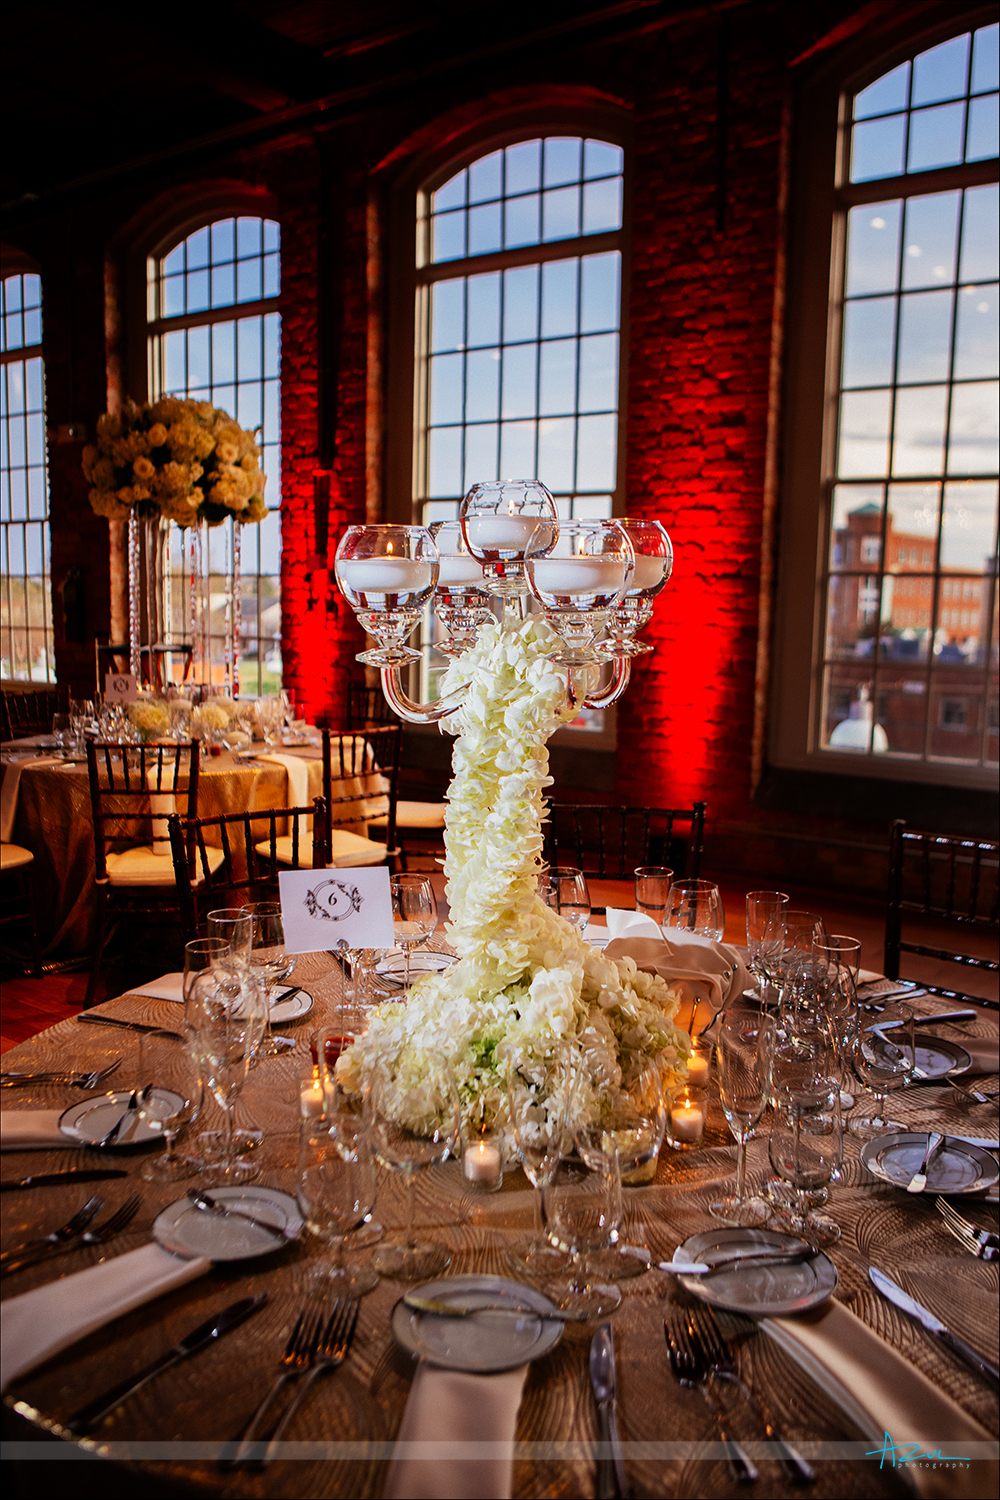 Amazing flowers created by Fresh Affairs in Raleigh NC for the wedding at The Cotton Room in Durham